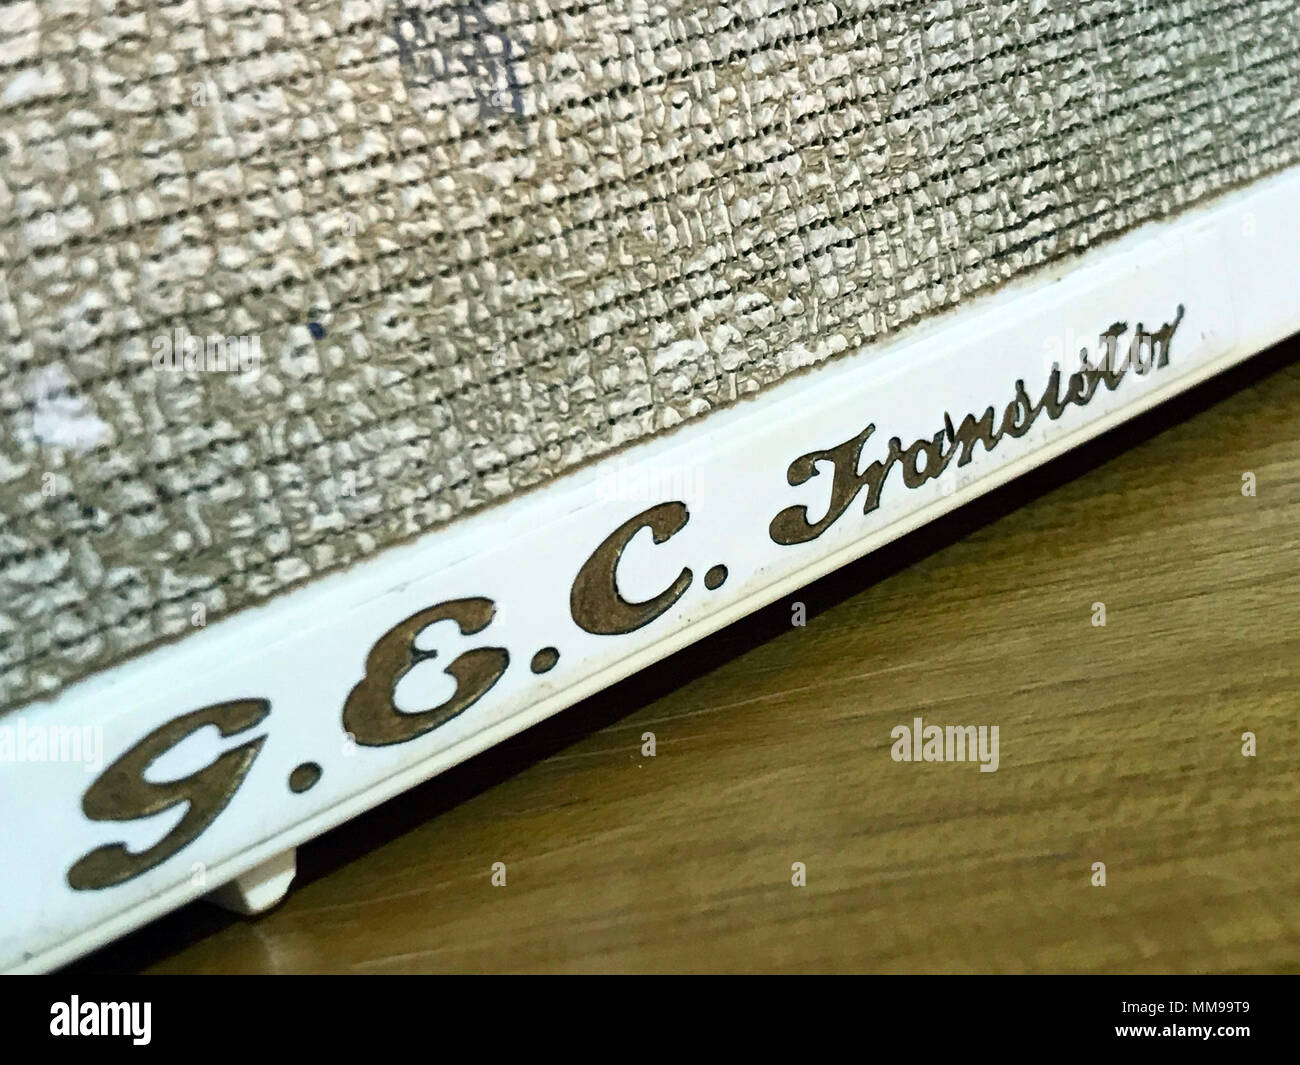 GEC Transistor Solid State Wireless receiver - Stock Image